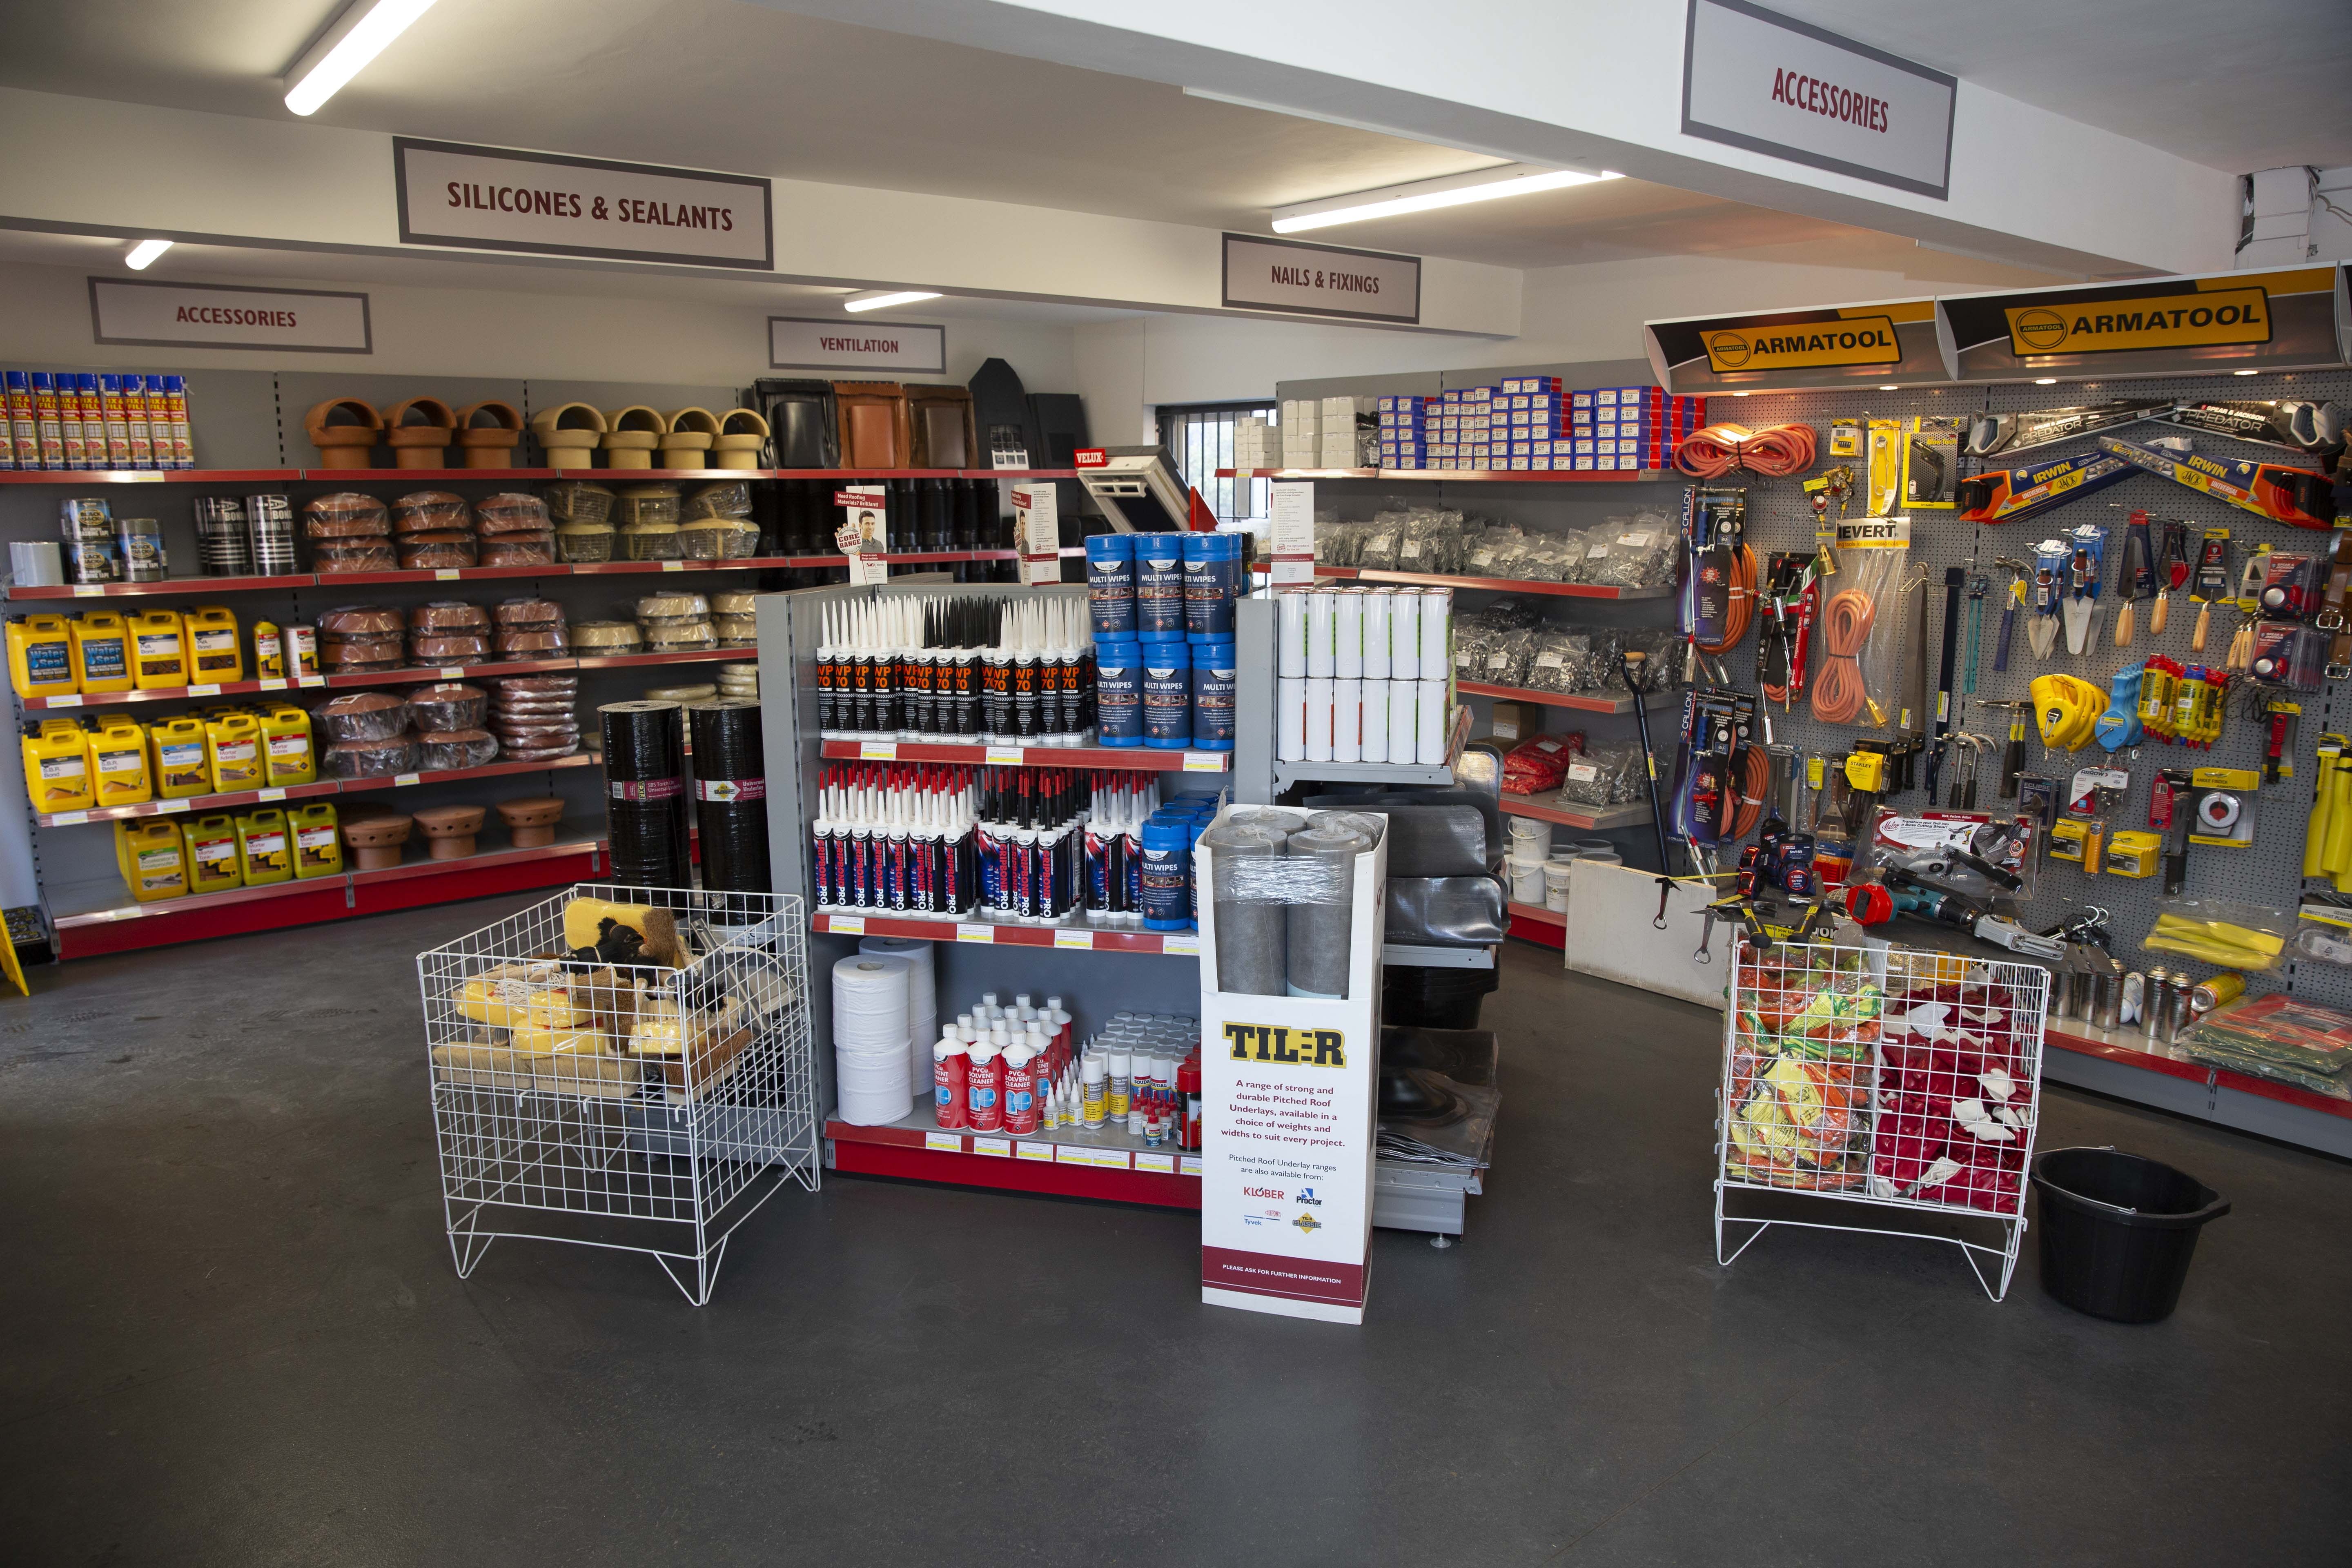 Sig Roofing To Host Open Day In Celebration Of New Gateshead Branch Refurbishment